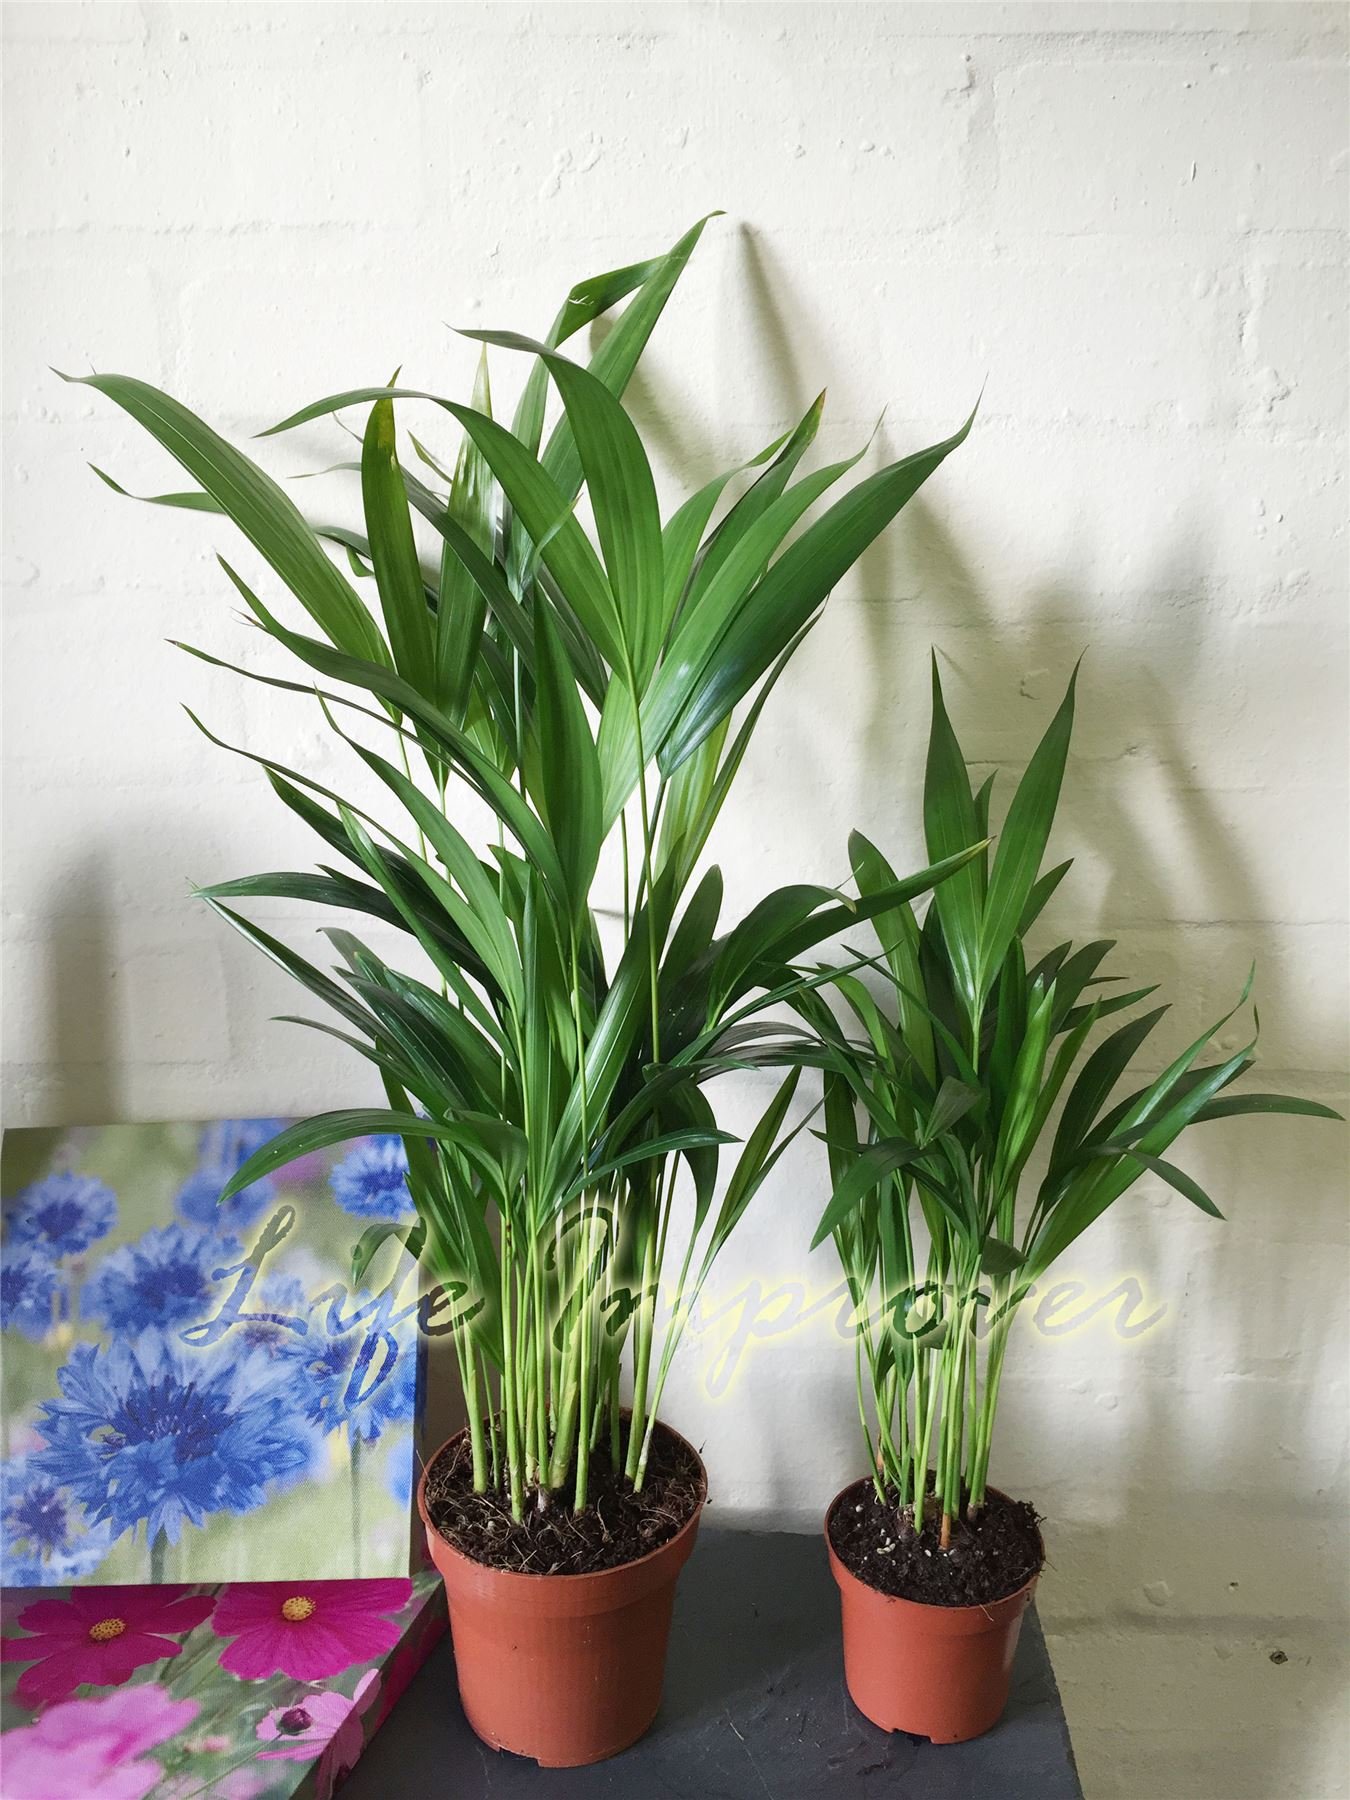 Palm Areca 1 Areca Palm Plant In Pot Cane Palm Indoor Garden Office